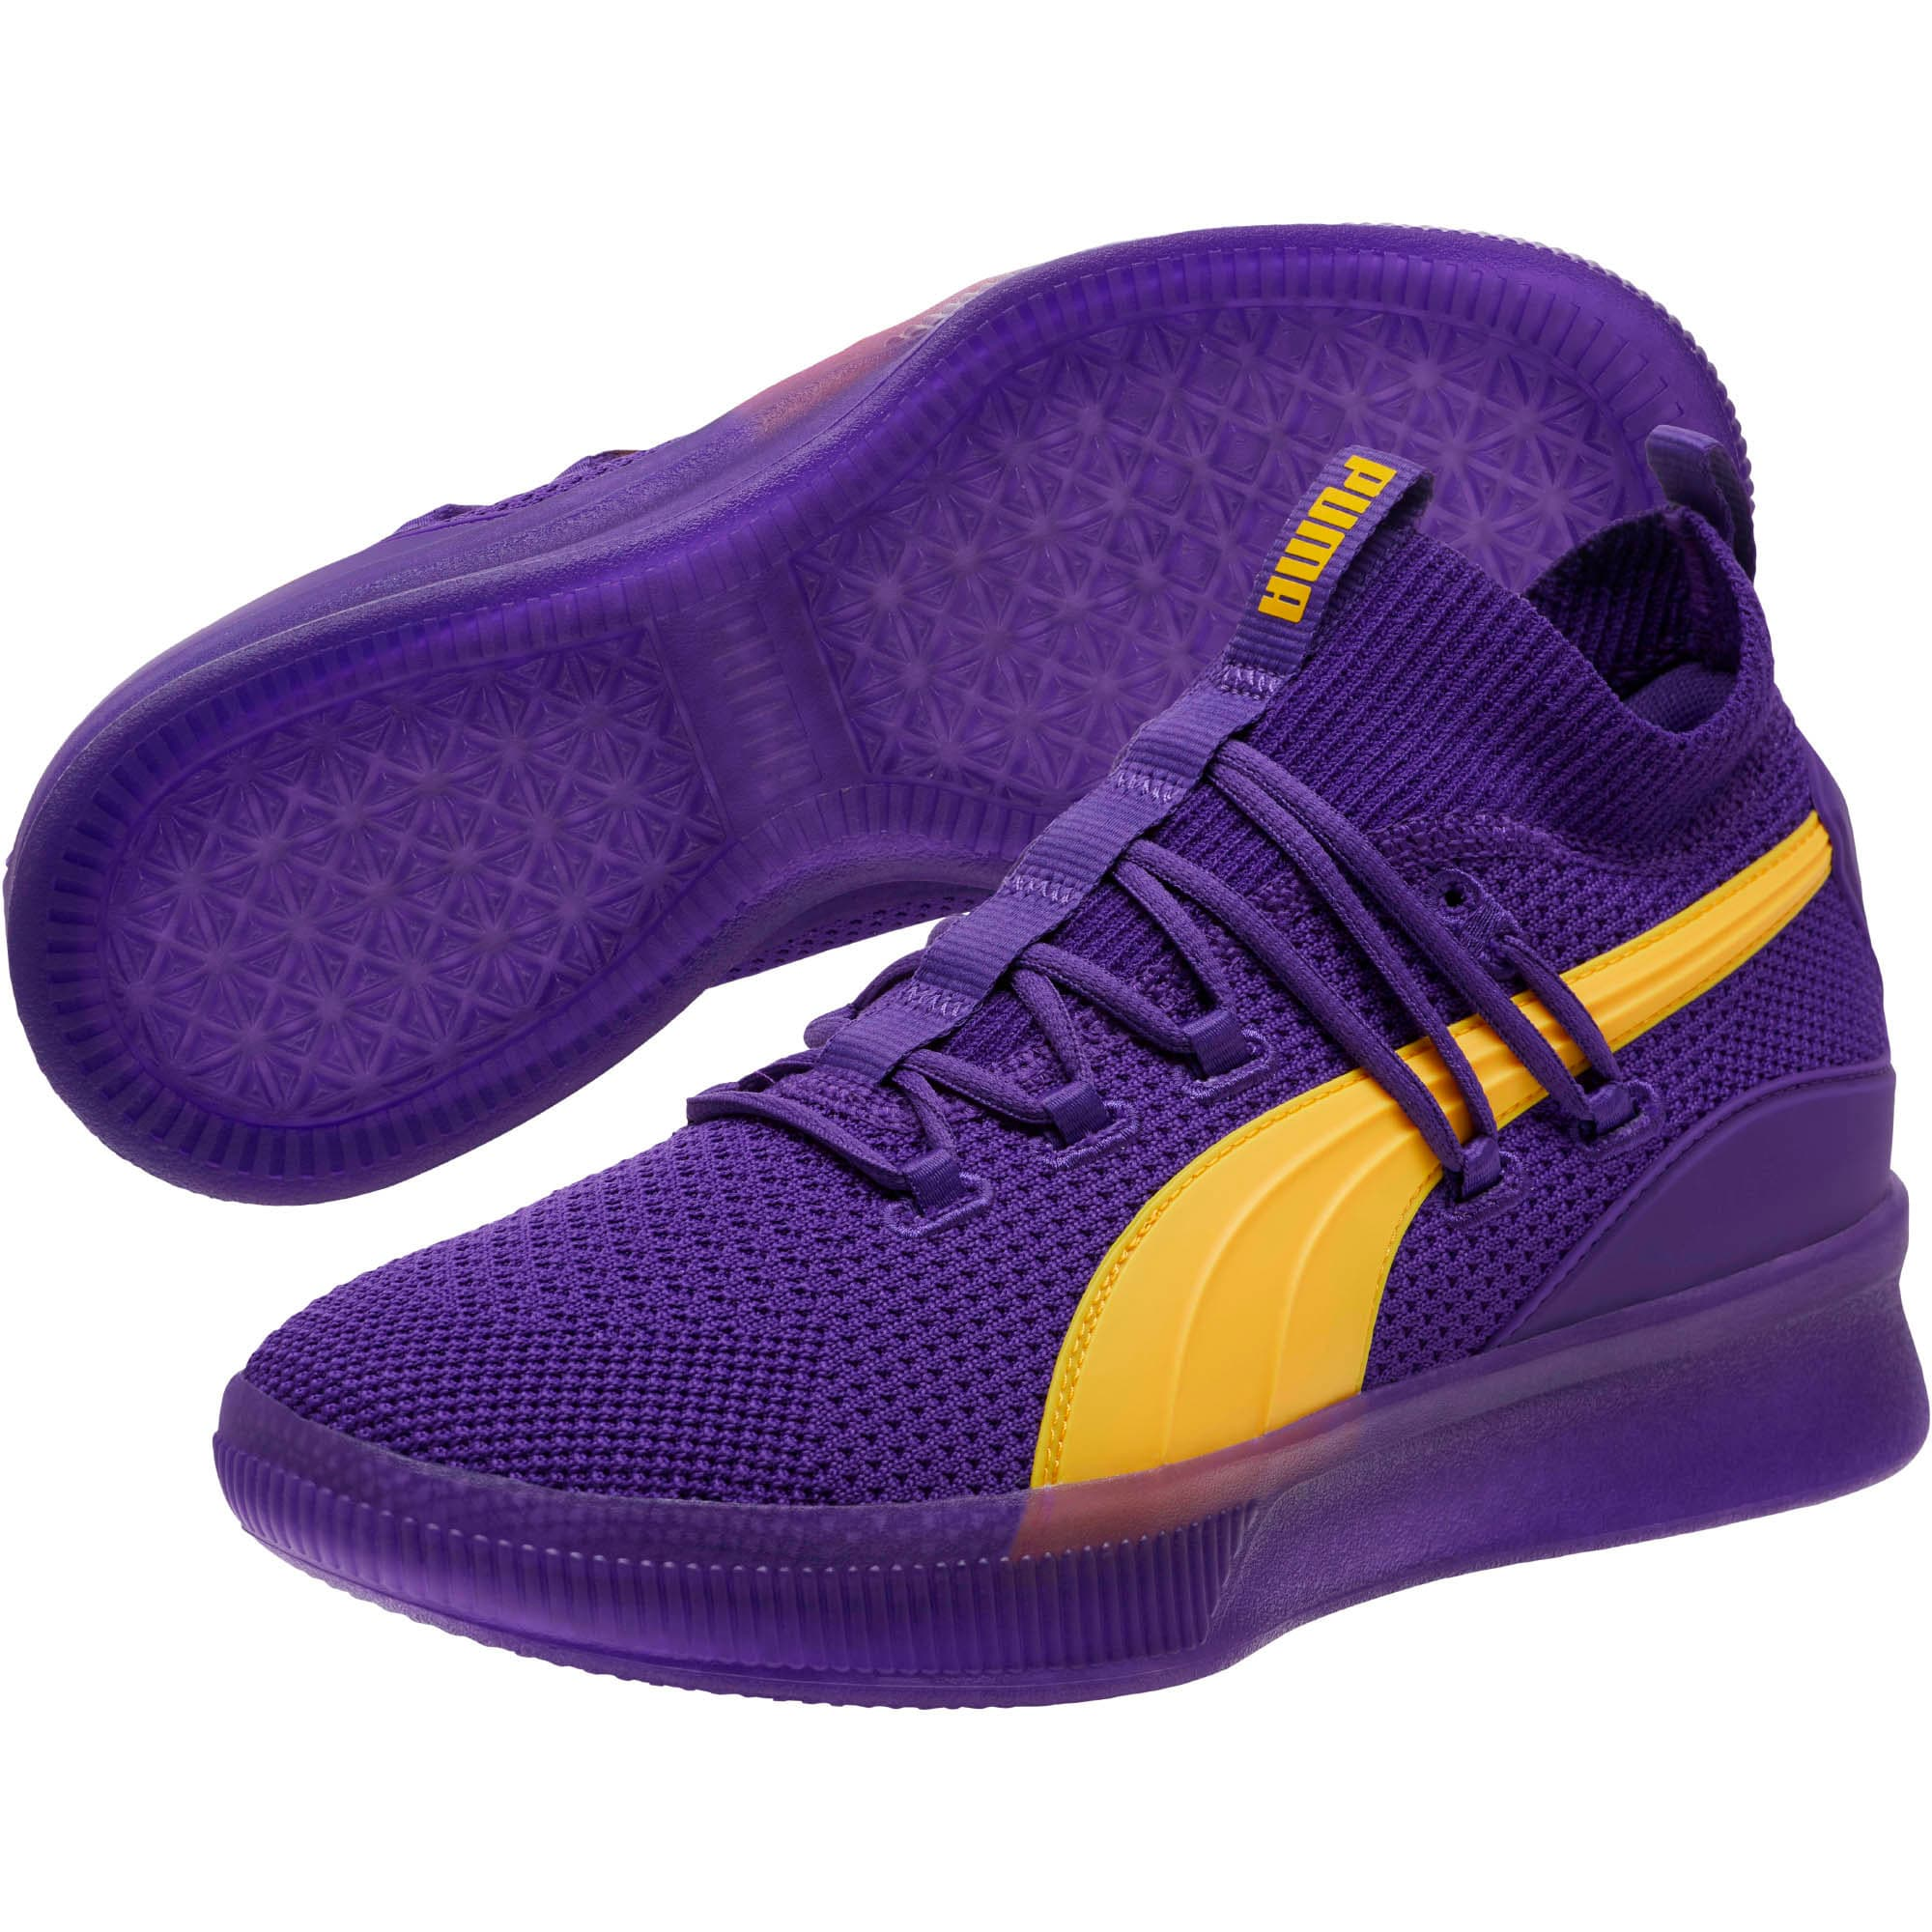 Thumbnail 2 of Clyde Court Core Basketball Shoes, Prism Violet, medium